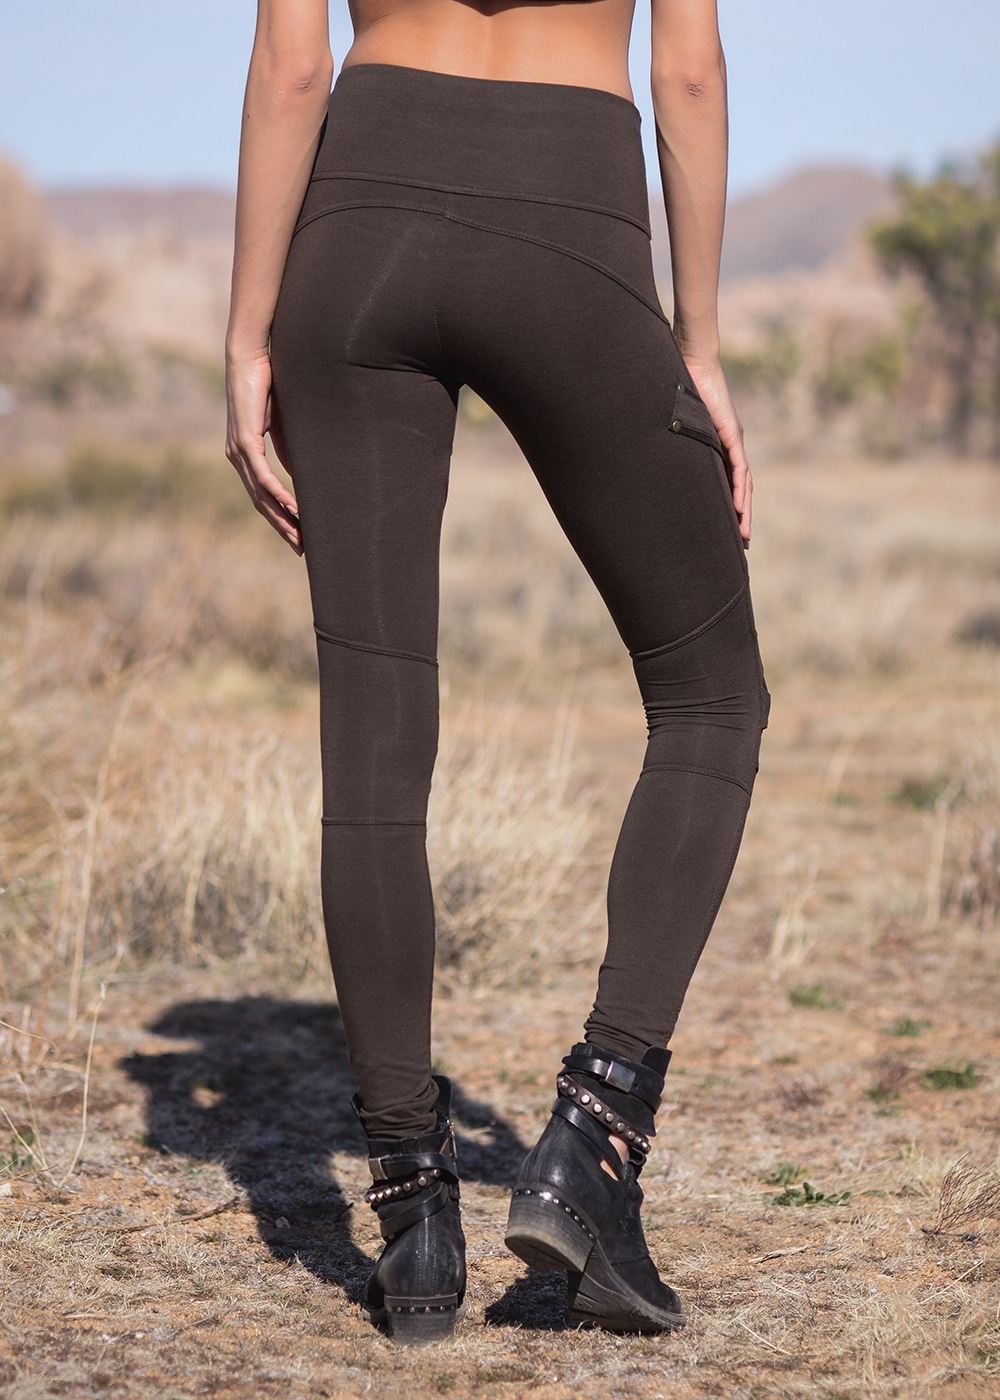 Bamboo and Organic Cotton Apocalypse Leggings in Brown by Nomads Hemp Wear Back